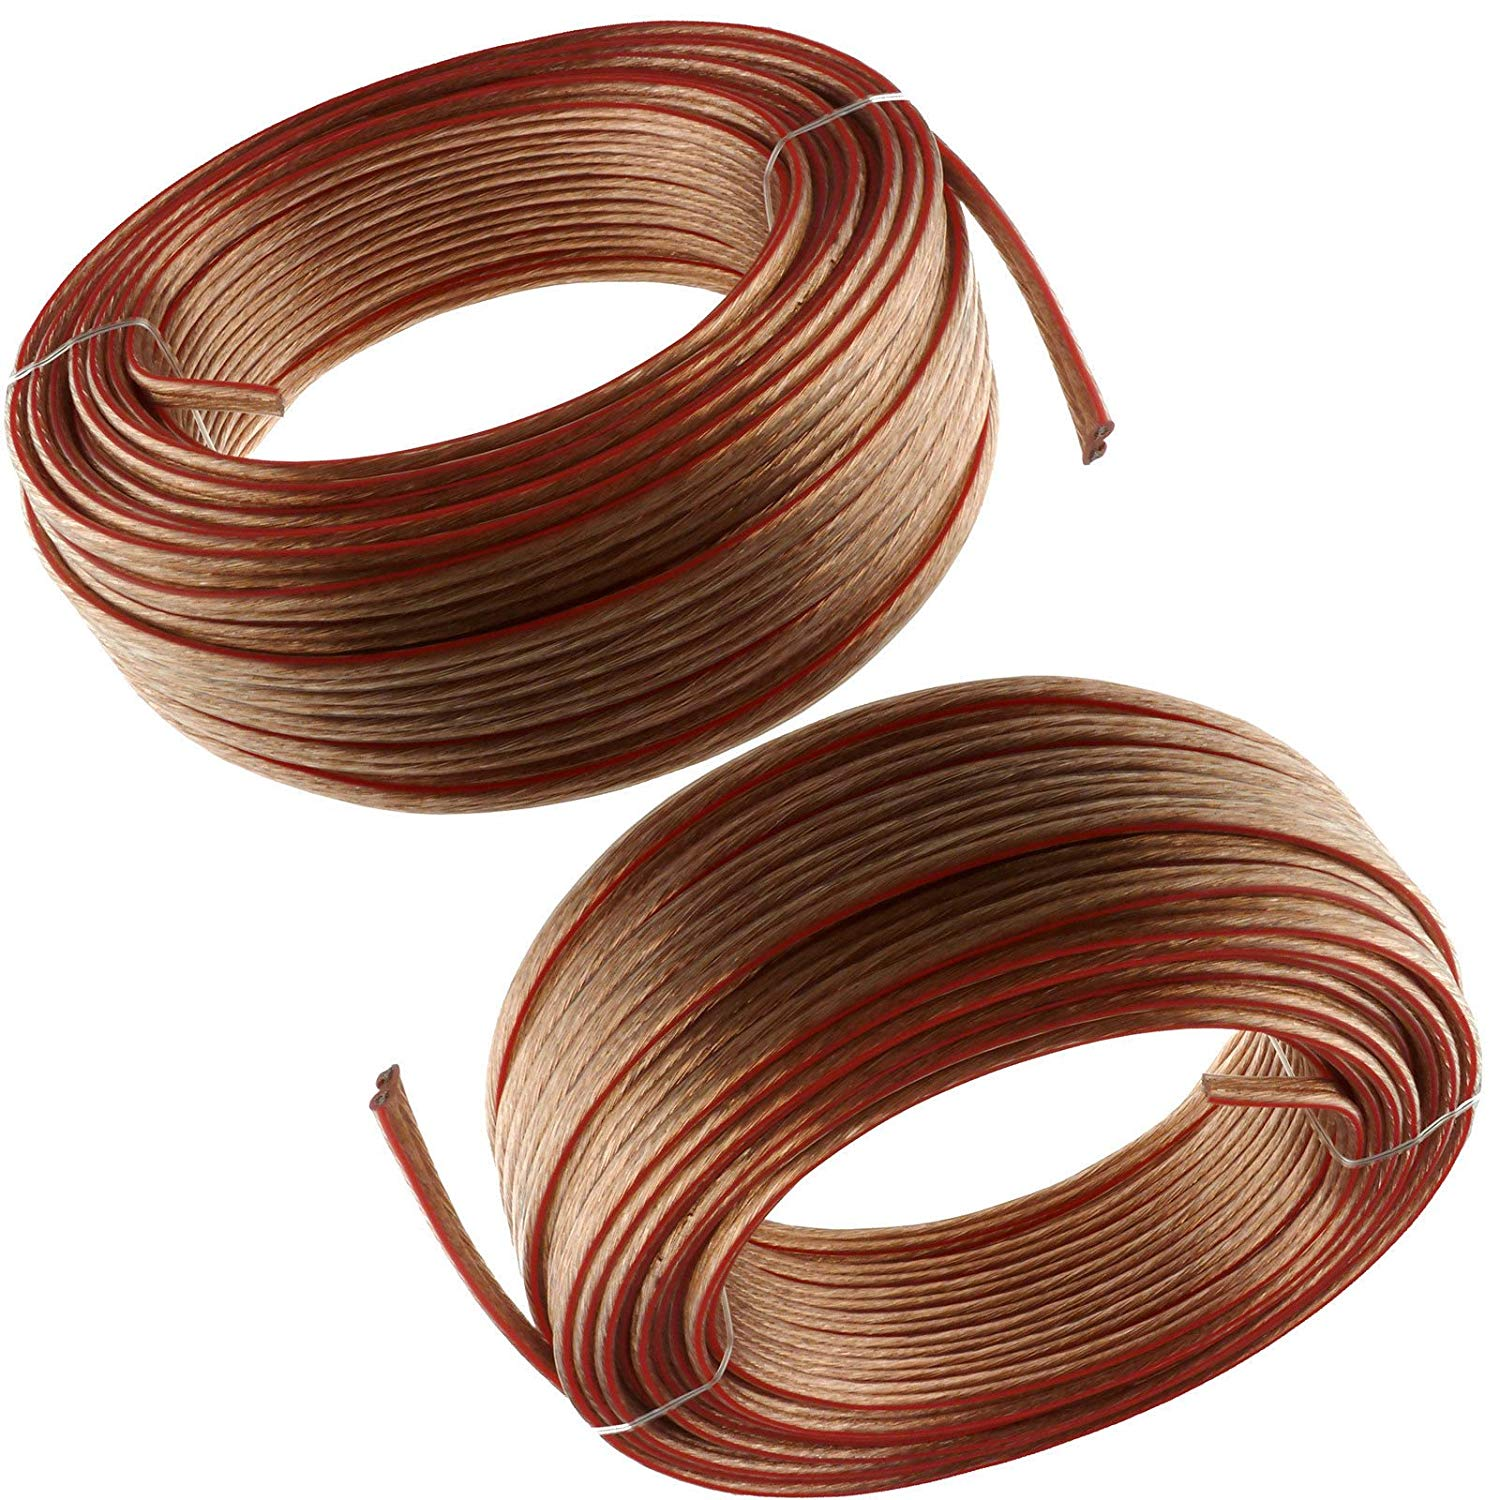 2 x 100'ft feet 2 Cable 16 awg ag Gauge Clear Speaker Wire 200 FT Total